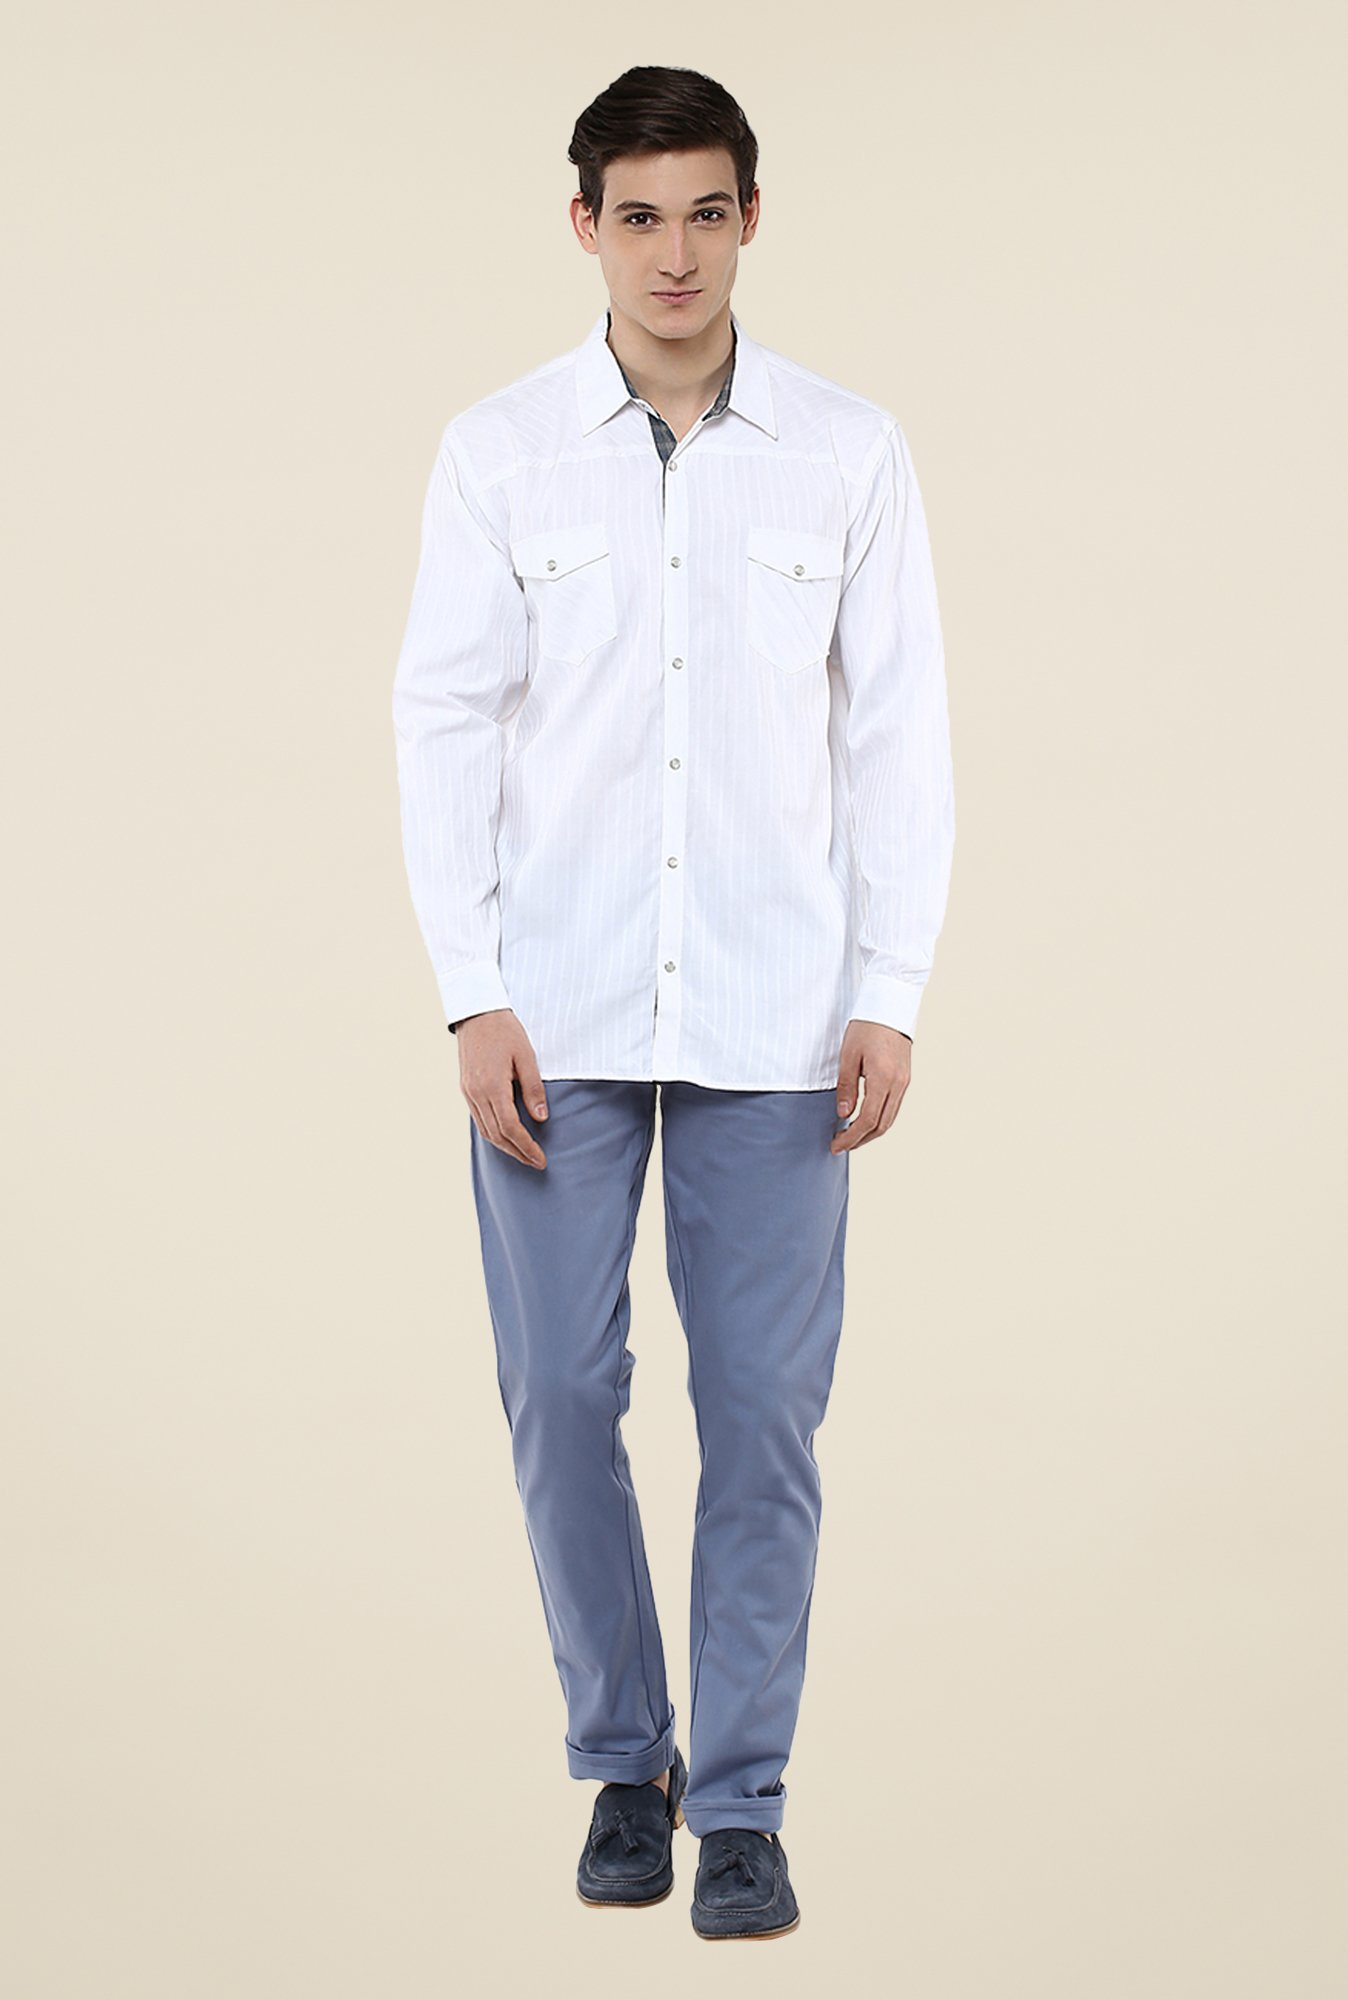 Yepme White Convey Solid Shirt